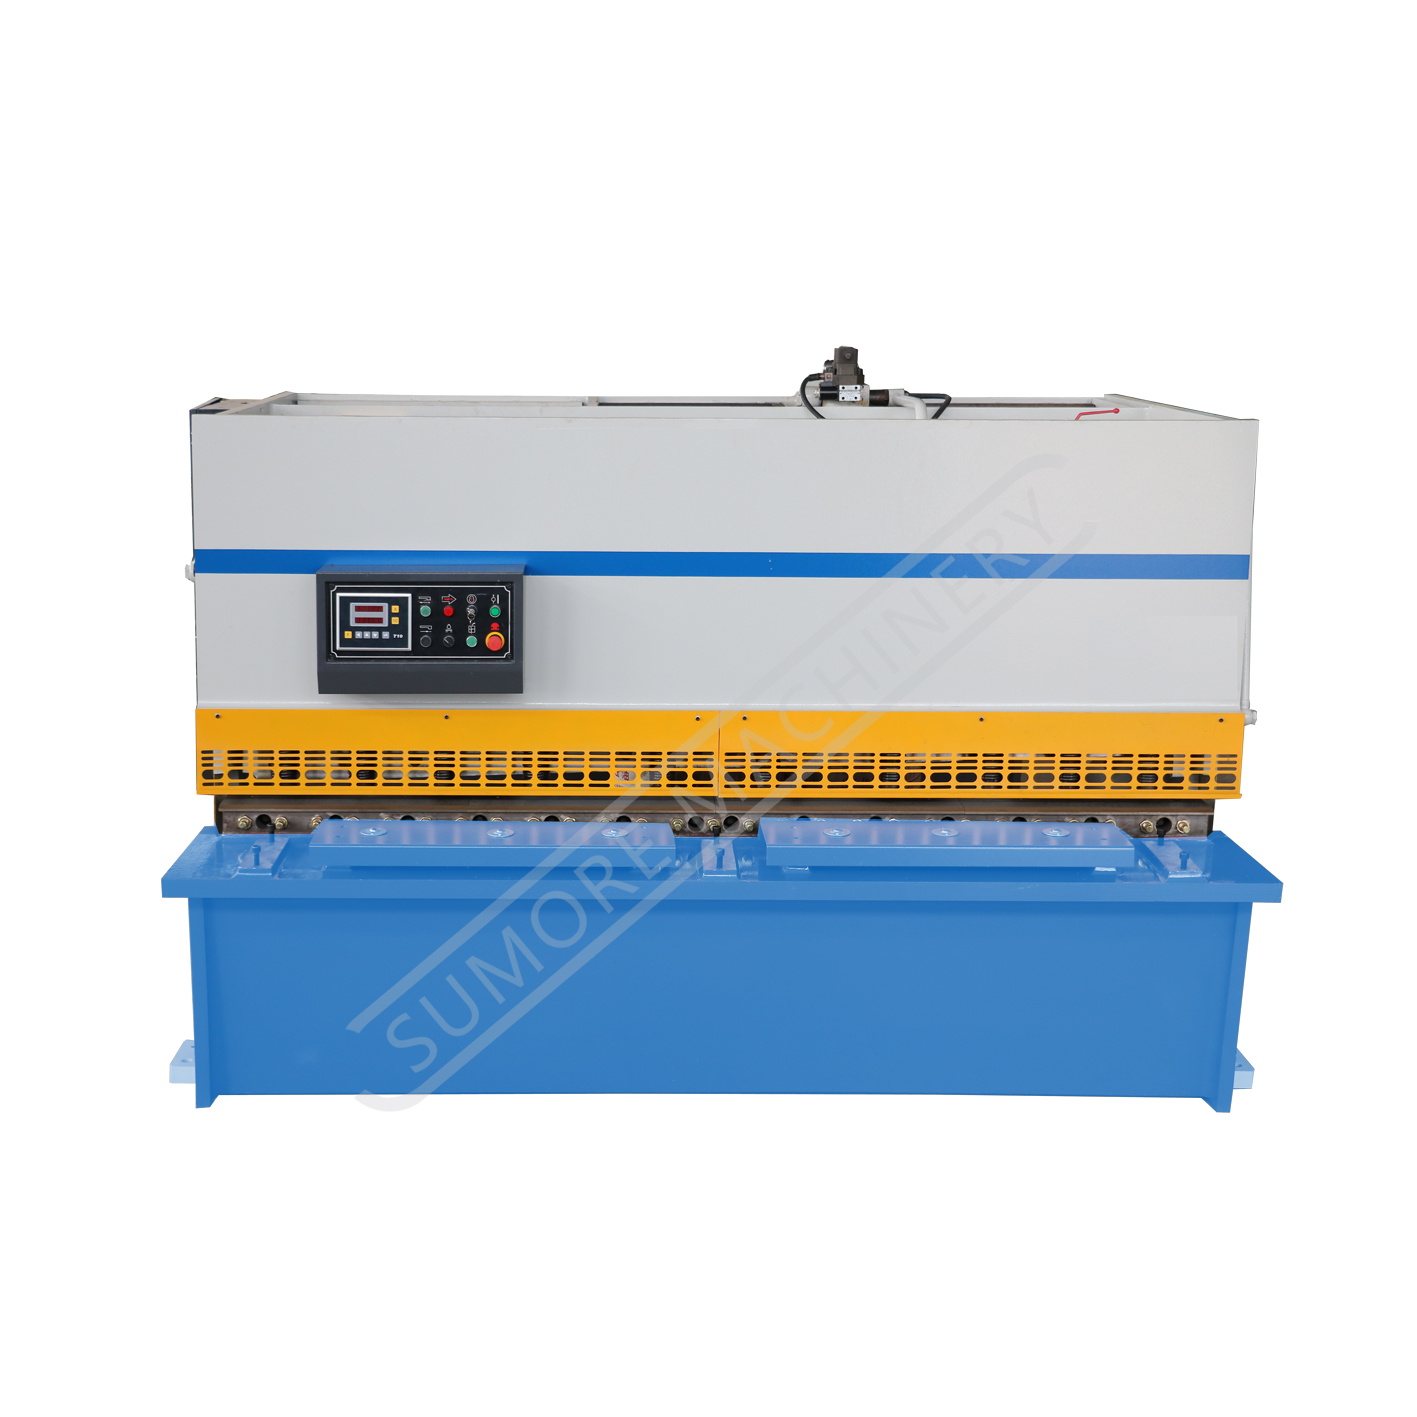 Hydraulic shearing machine pendulum plate type OEM customized